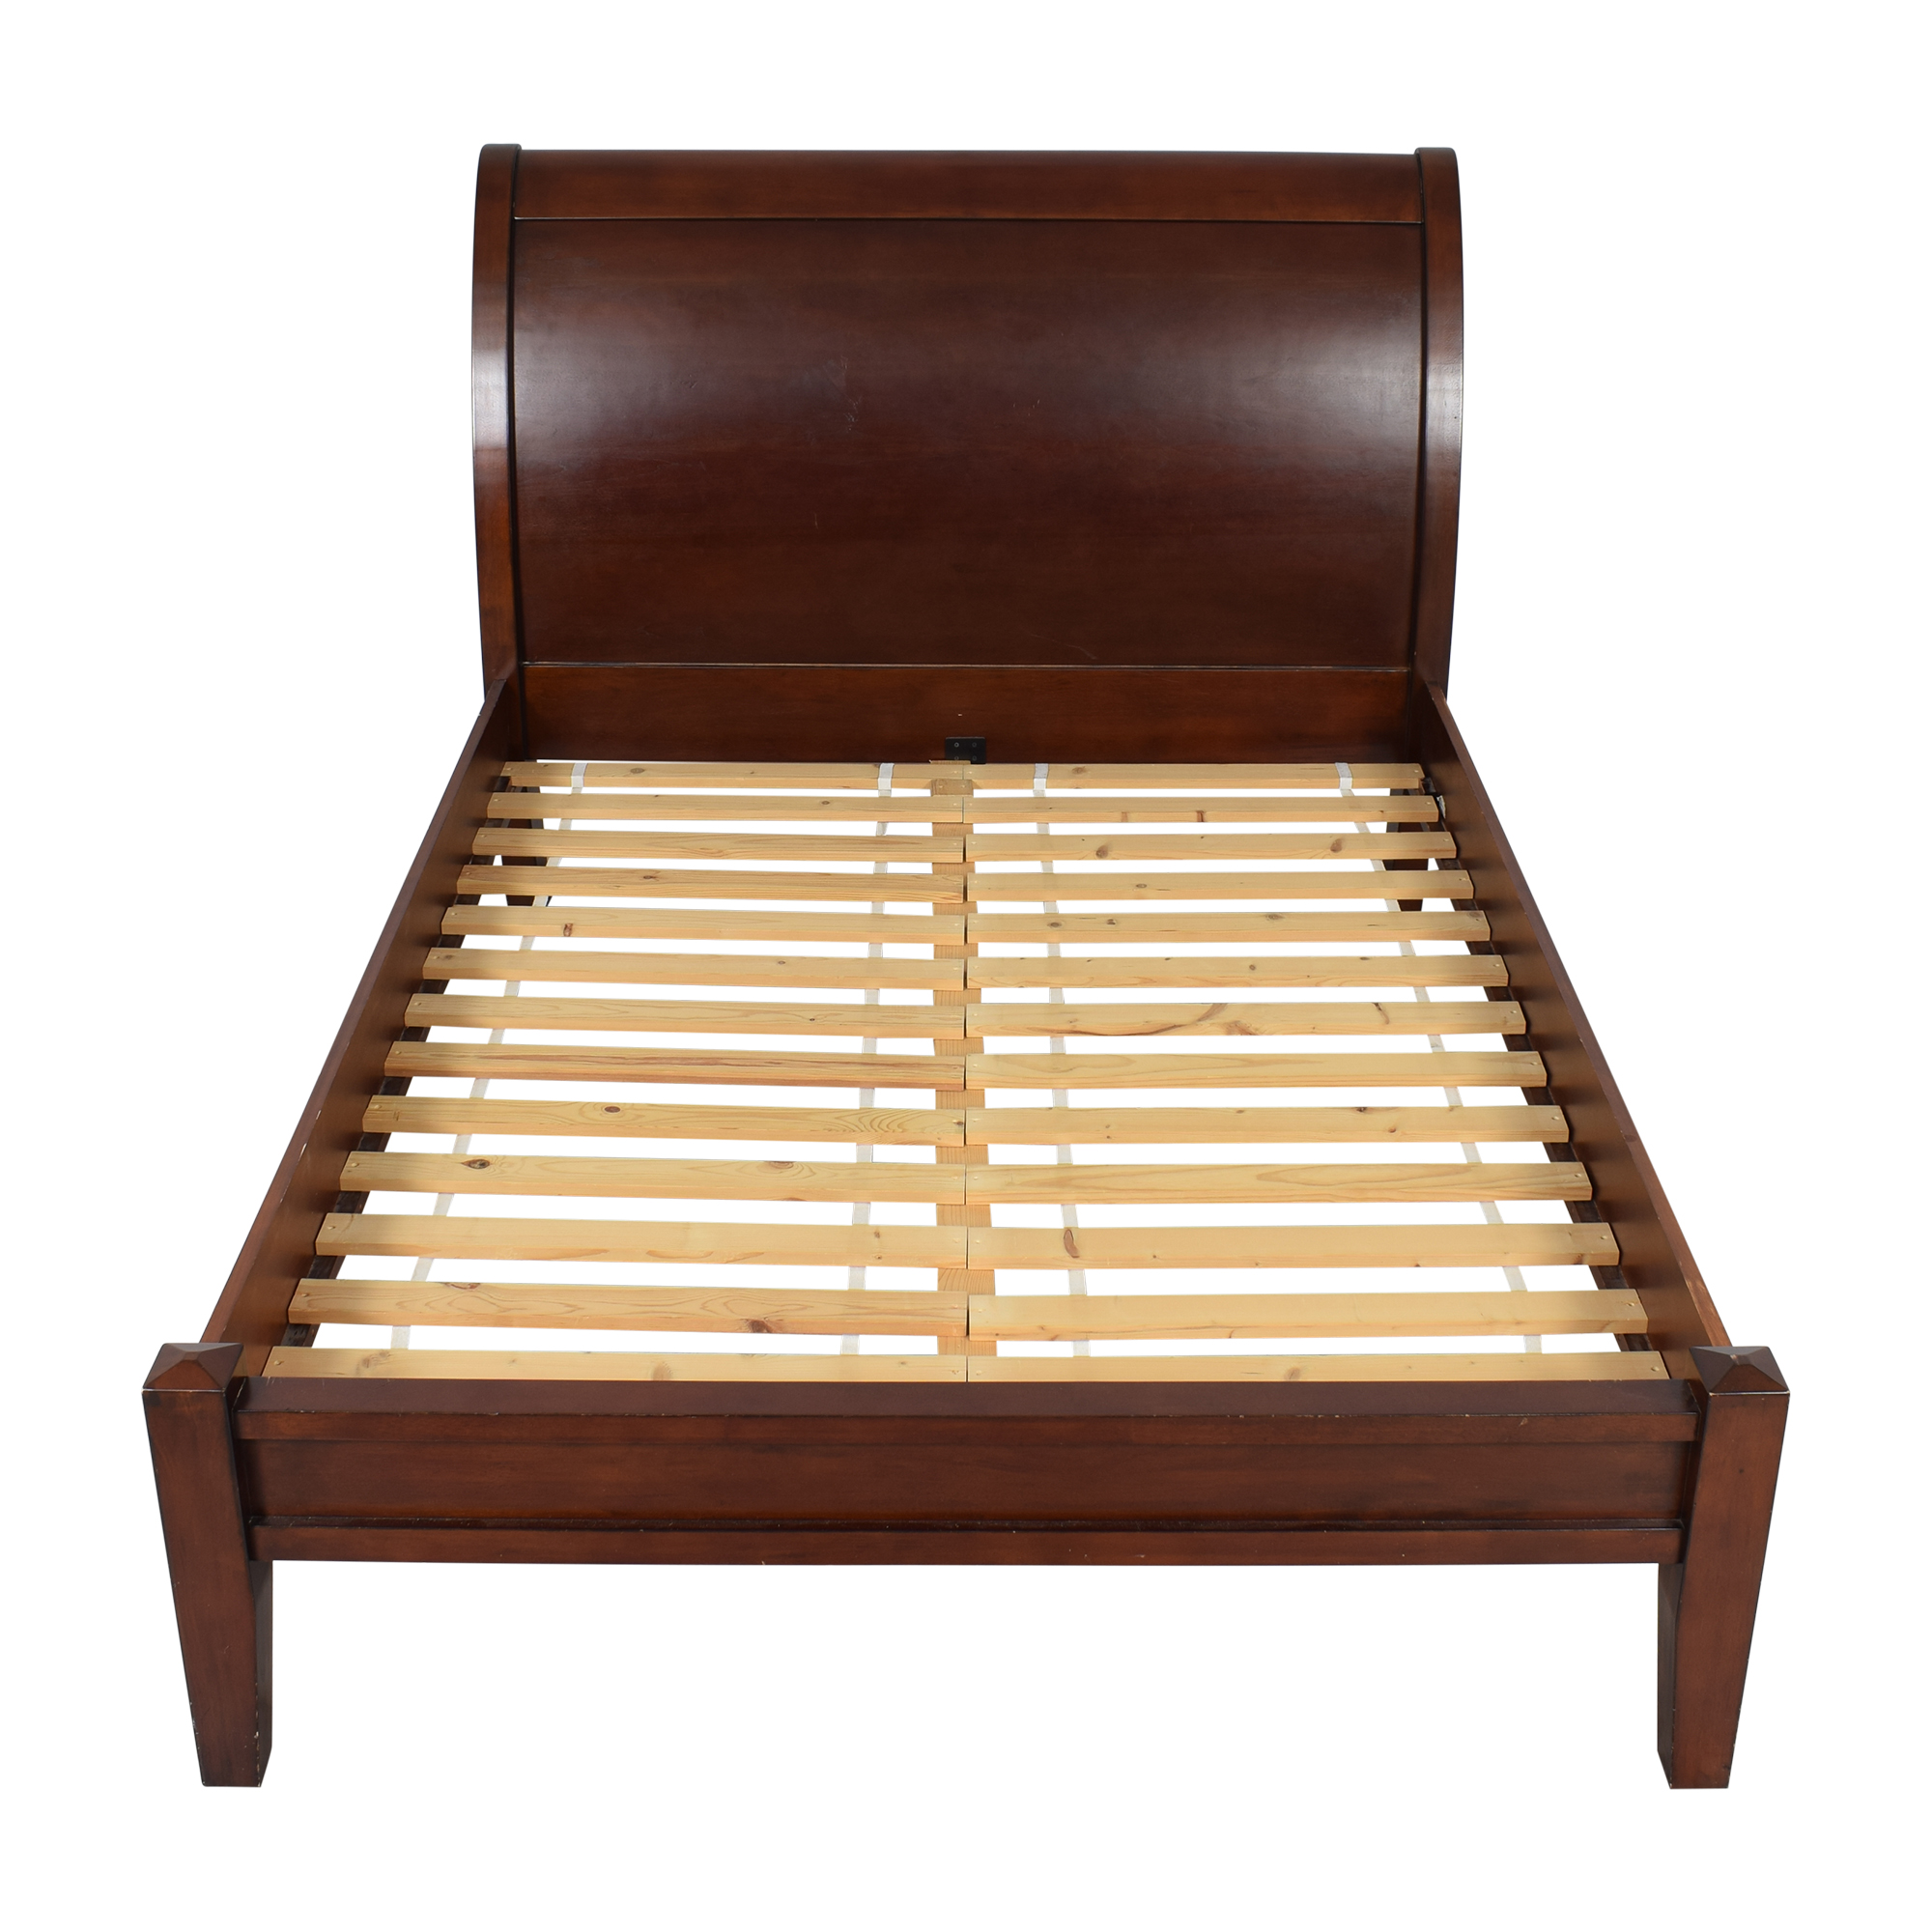 76 Off Pottery Barn Pottery Barn Queen Valencia Sleigh Bed Beds